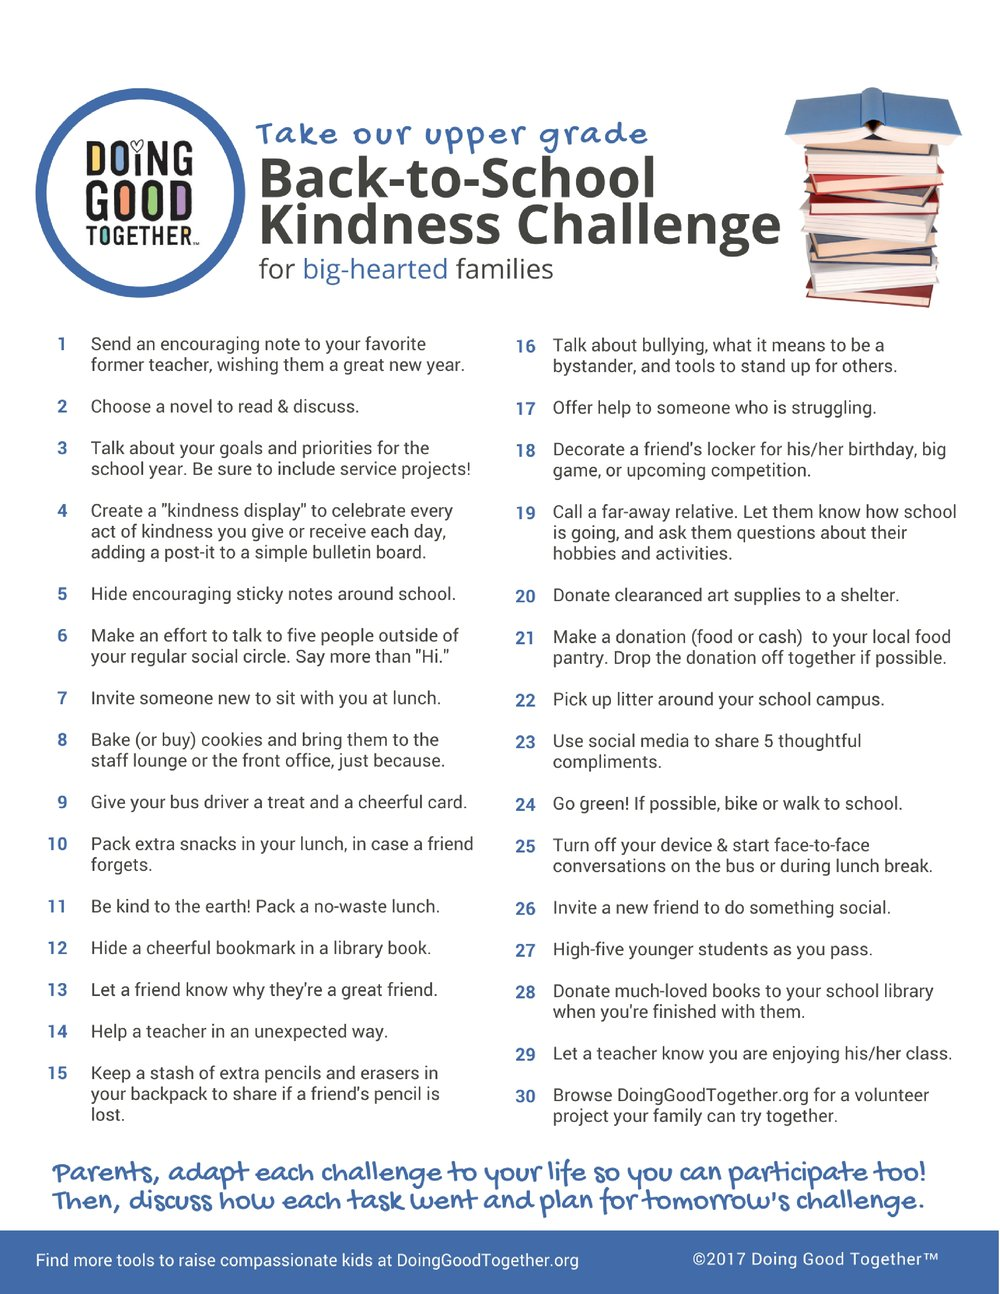 Click to print the upper grade back-to-school challenge.